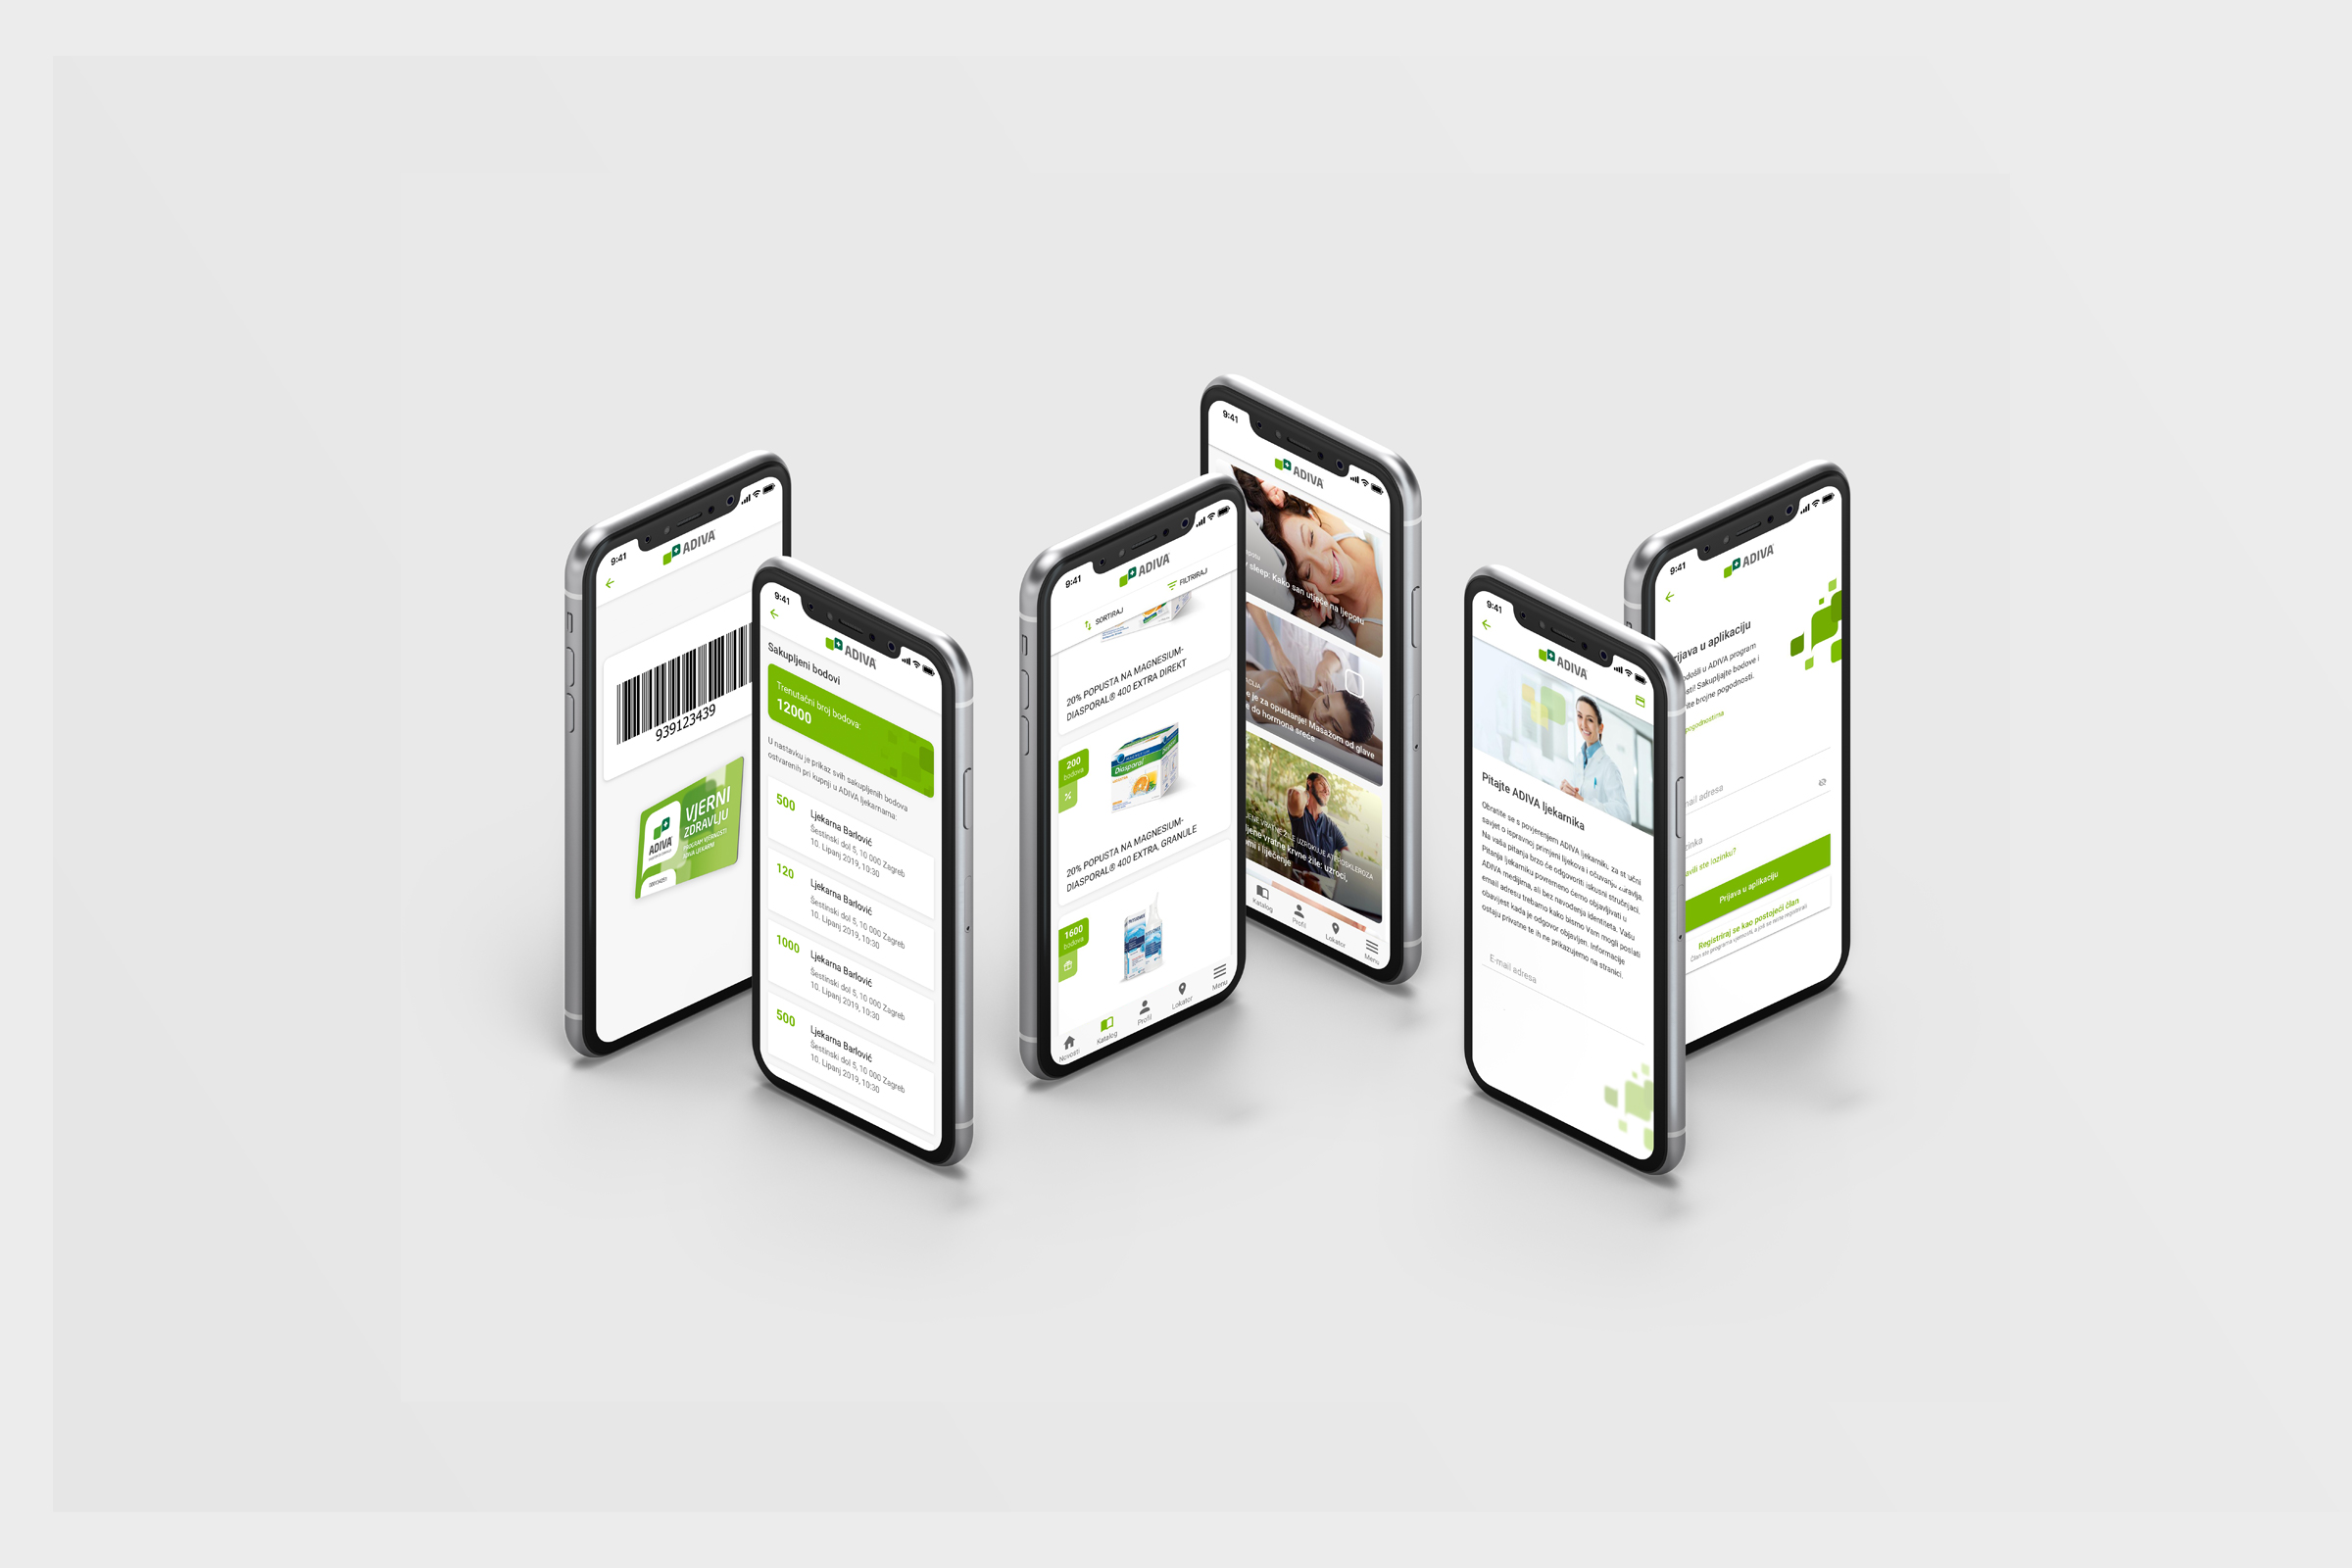 Production and UX/UI design and content creation for ADIVA mobile application